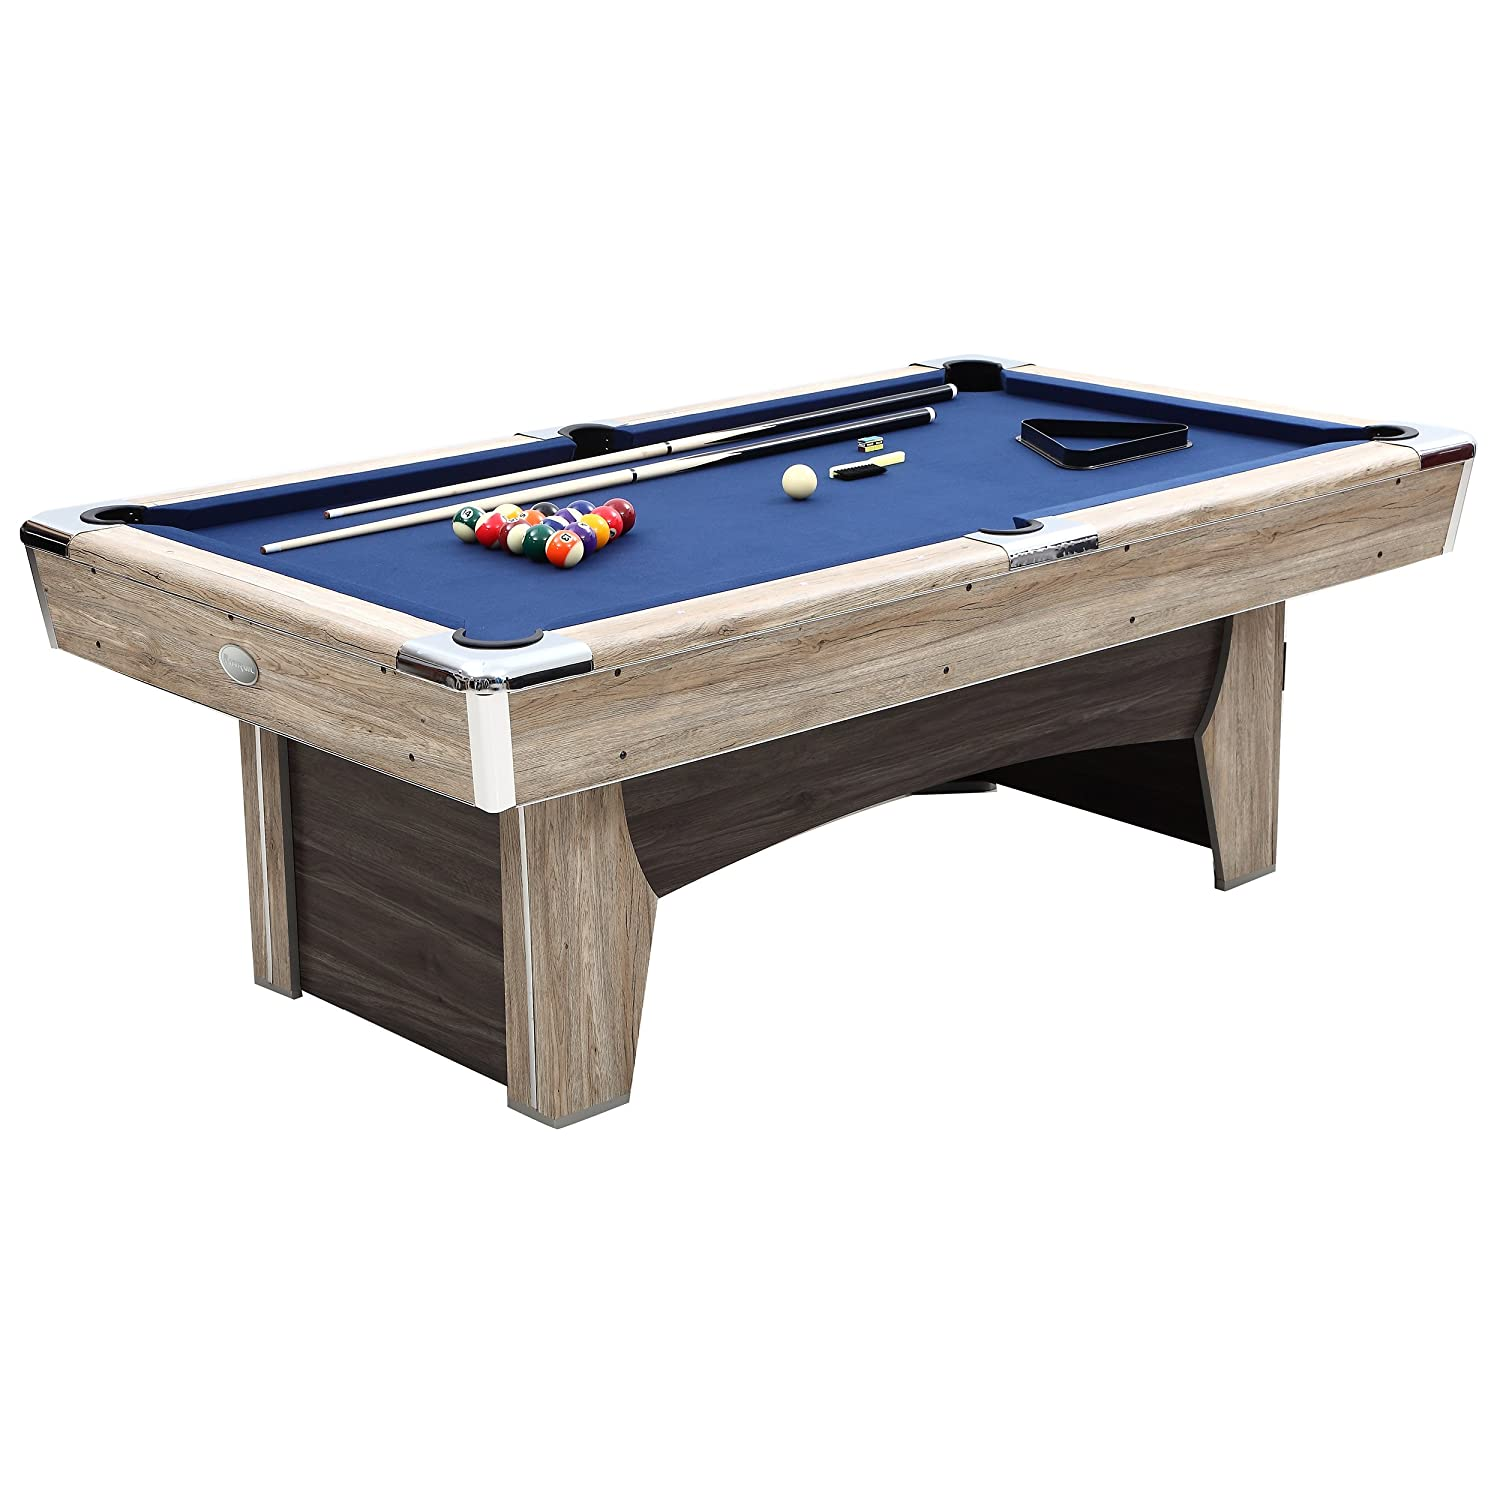 Pool table legs accessories for sale - Amazon Com Harvil Beachcomber Pool Table 84 Inches With Free Complete Accessories Set Sports Outdoors